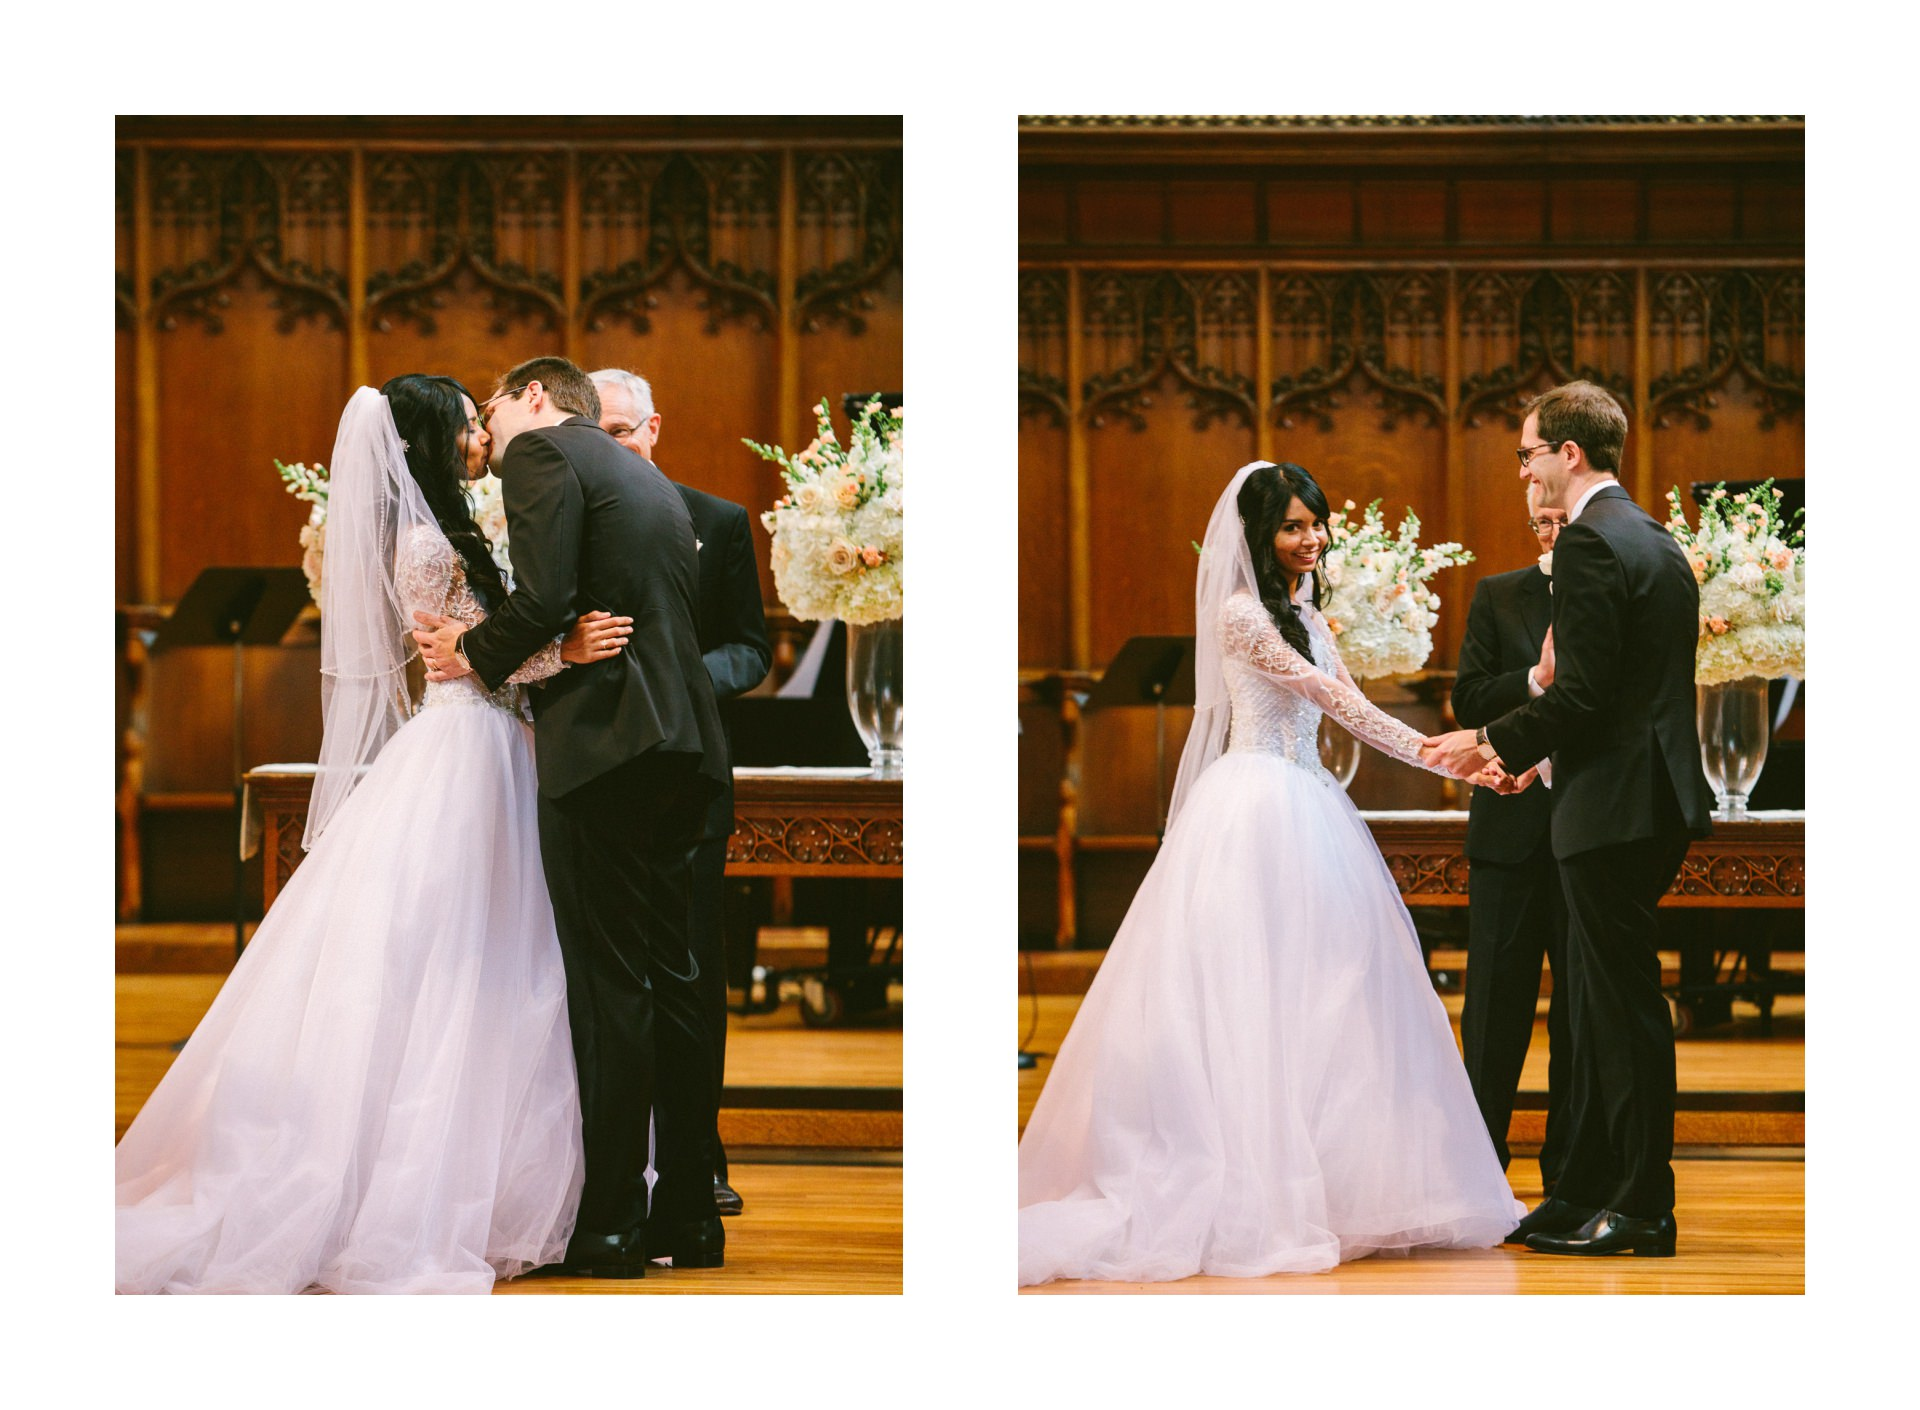 Severance Hall Wedding Photographer in Cleveland 31.jpg